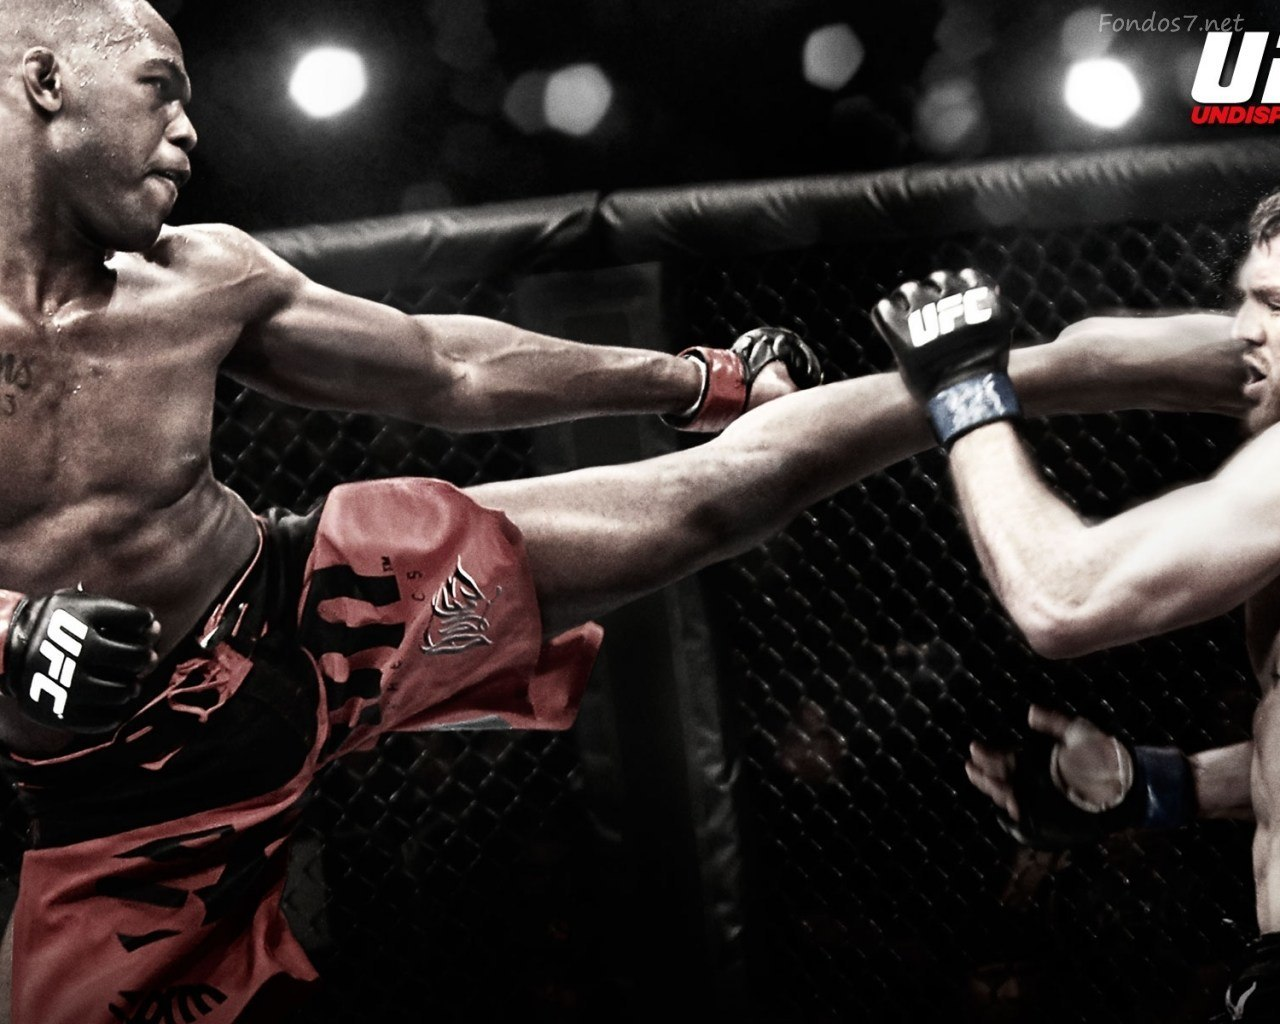 jon jones kick punch top ufc fighter 2014 images